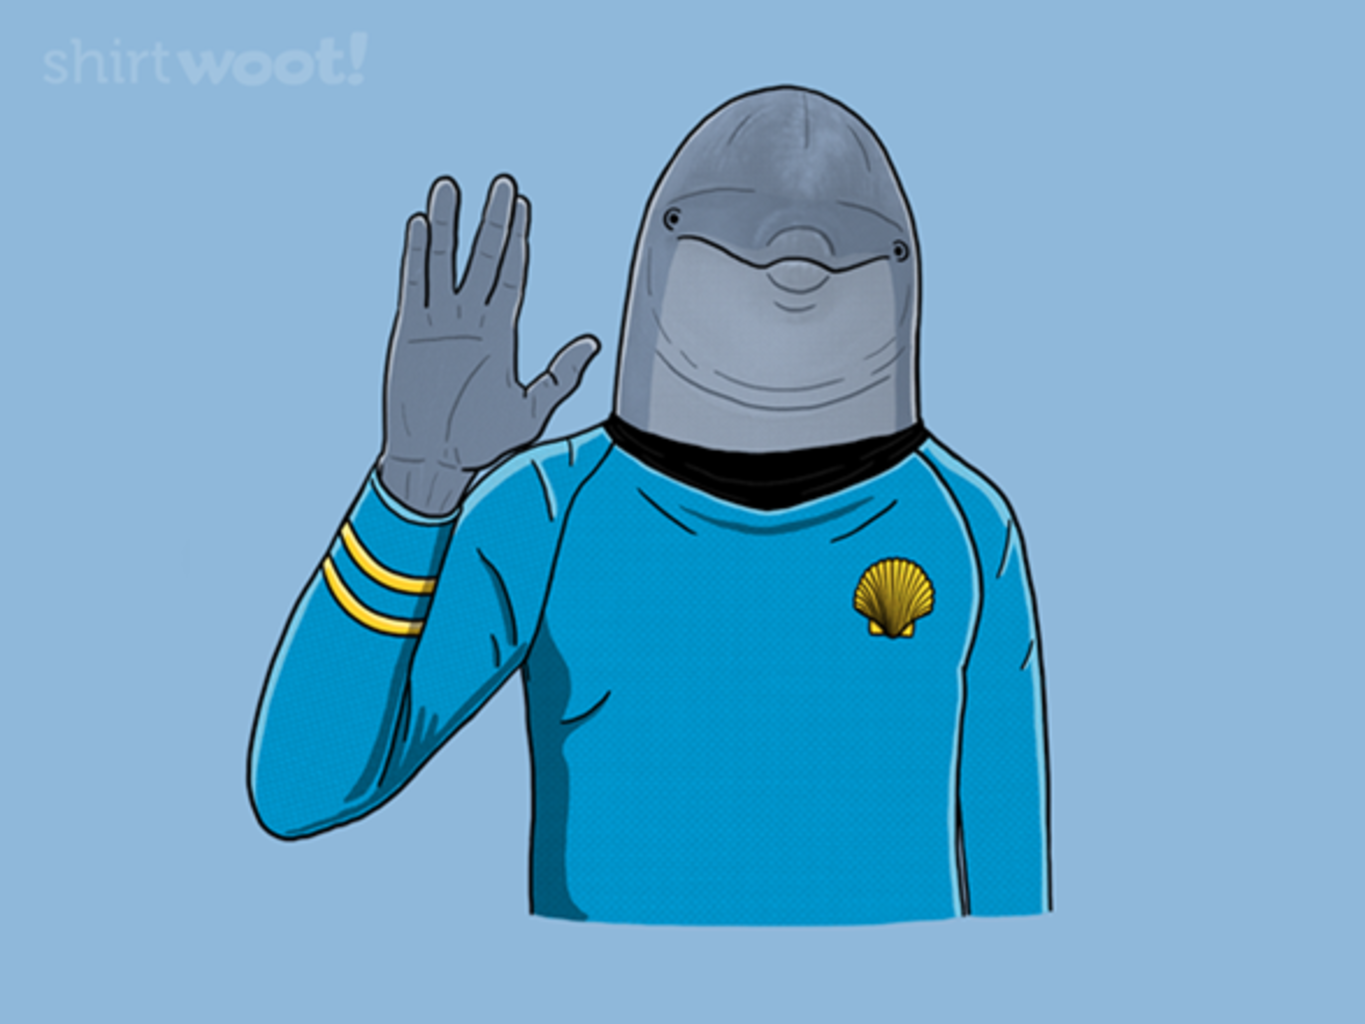 Woot!: Live Long and Porpoise